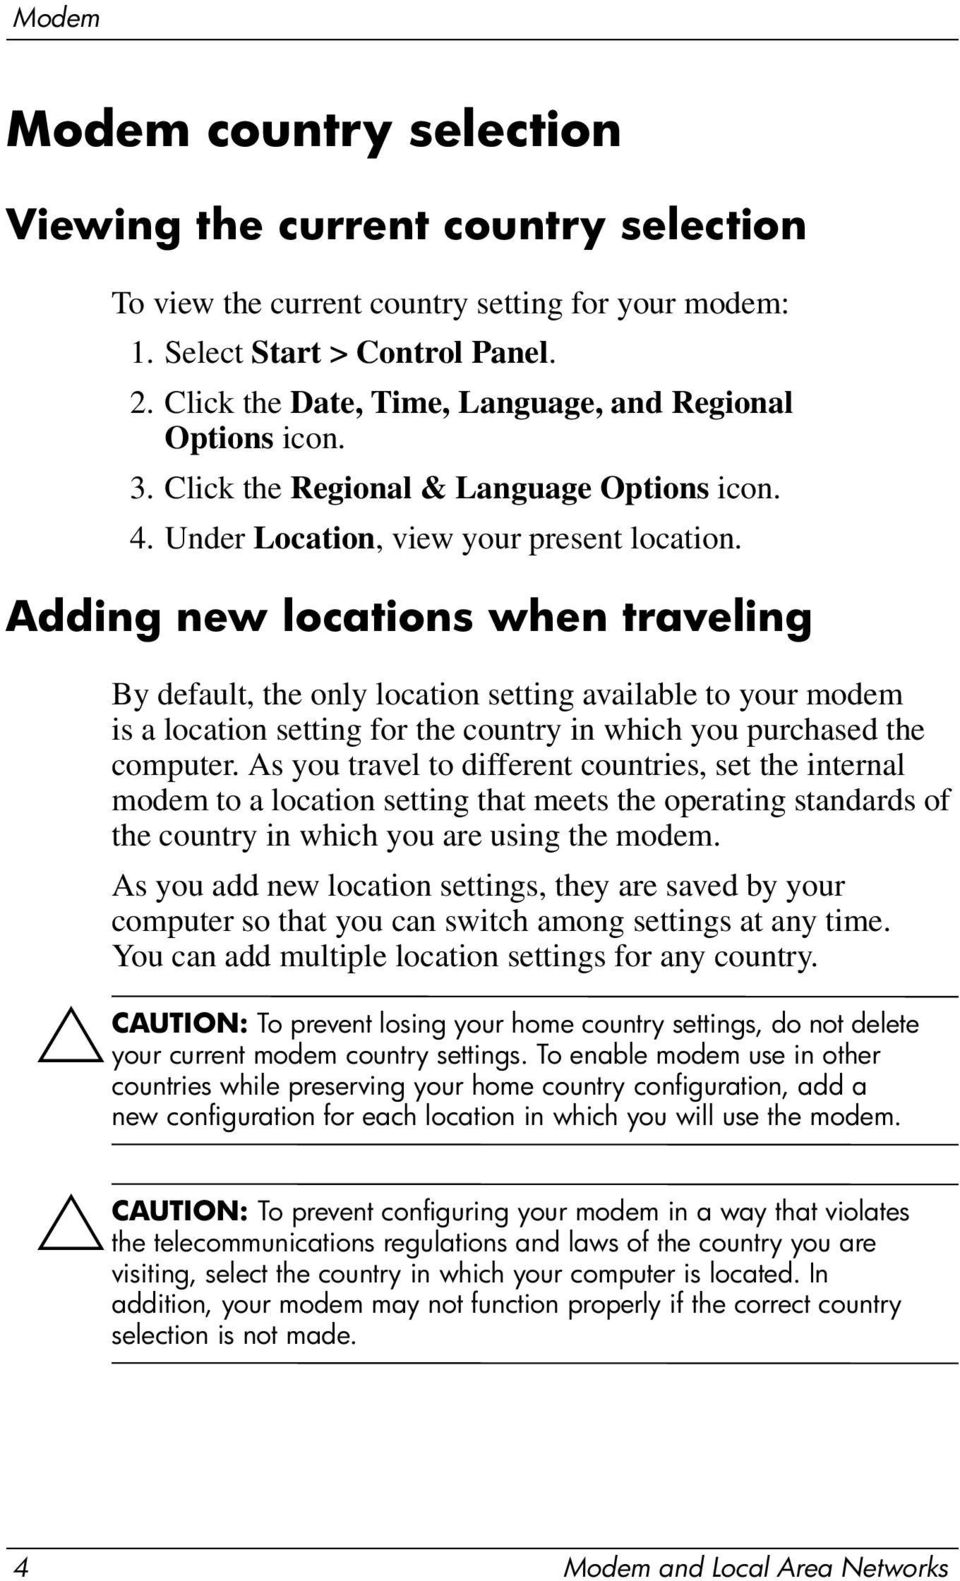 Adding new locations when traveling By default, the only location setting available to your modem is a location setting for the country in which you purchased the computer.